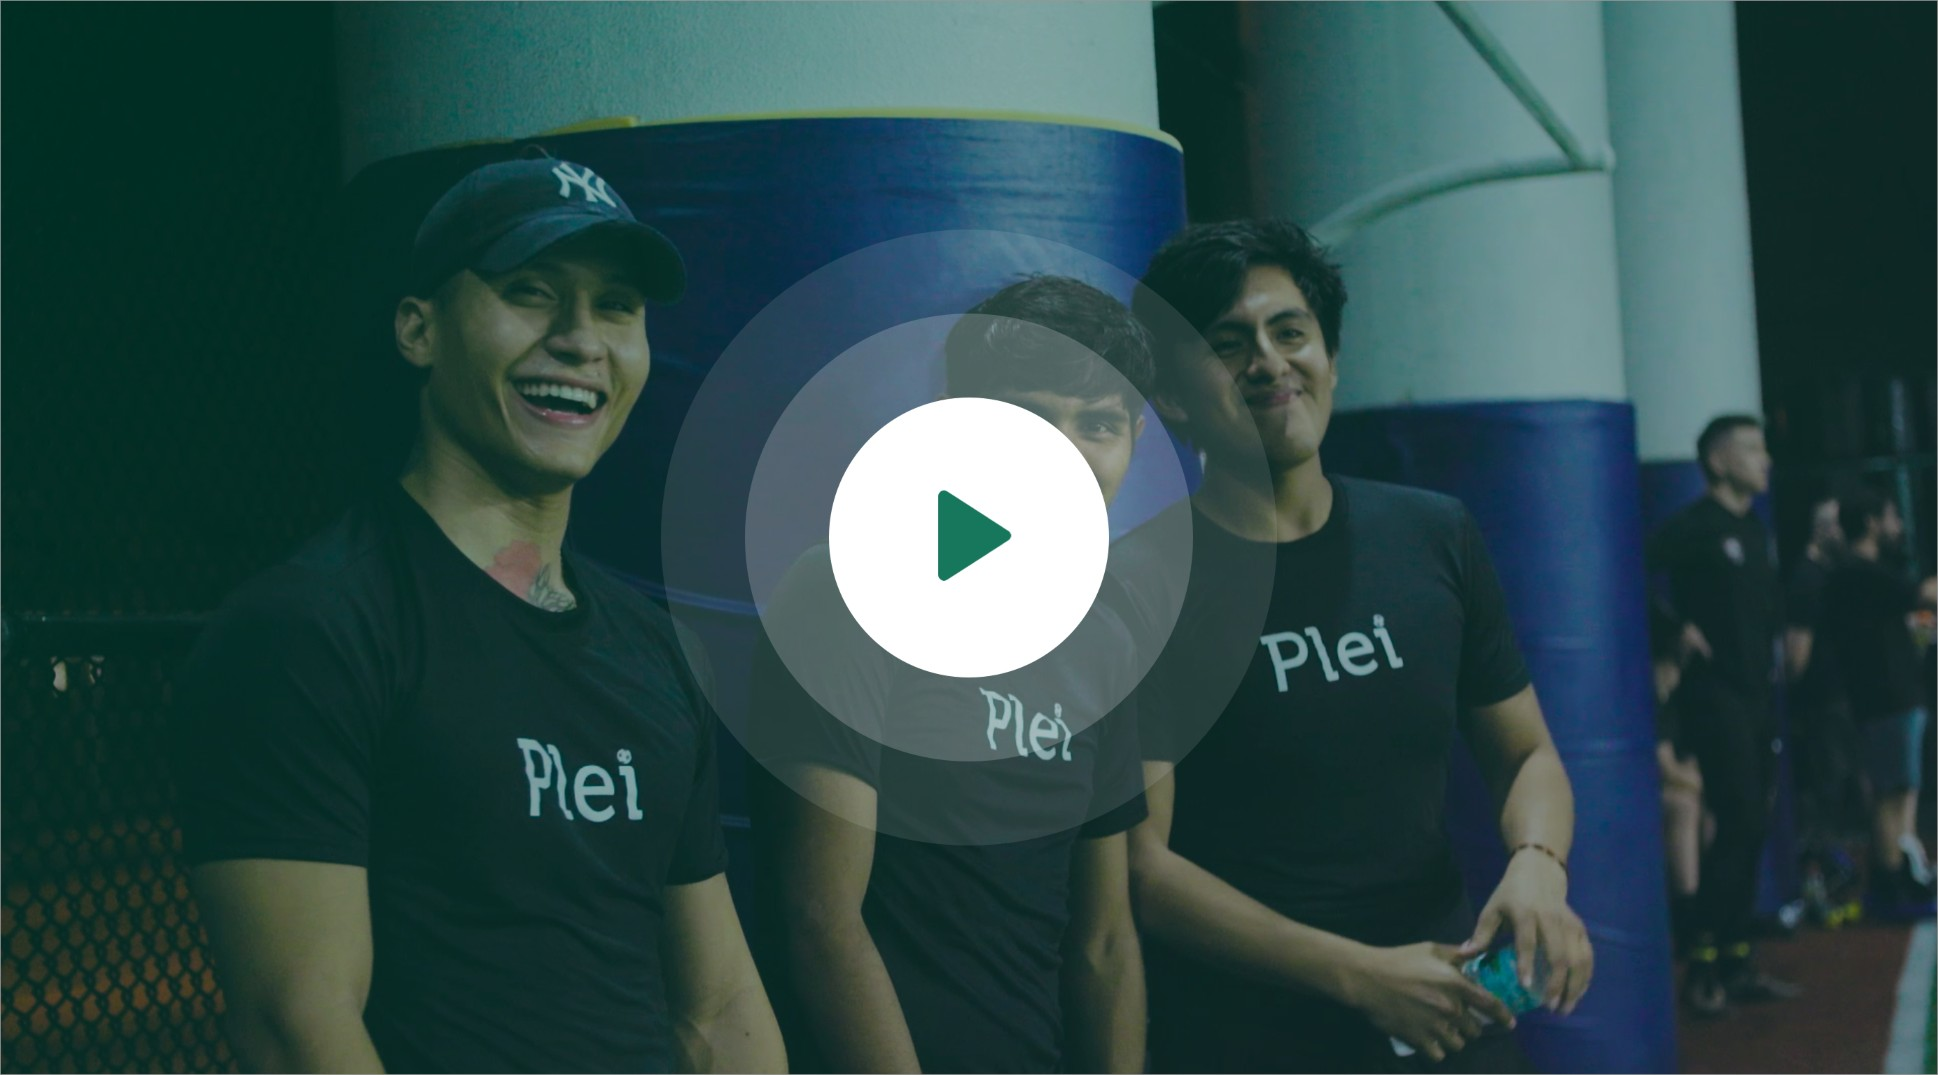 Plei - A Soccer Facility Management System